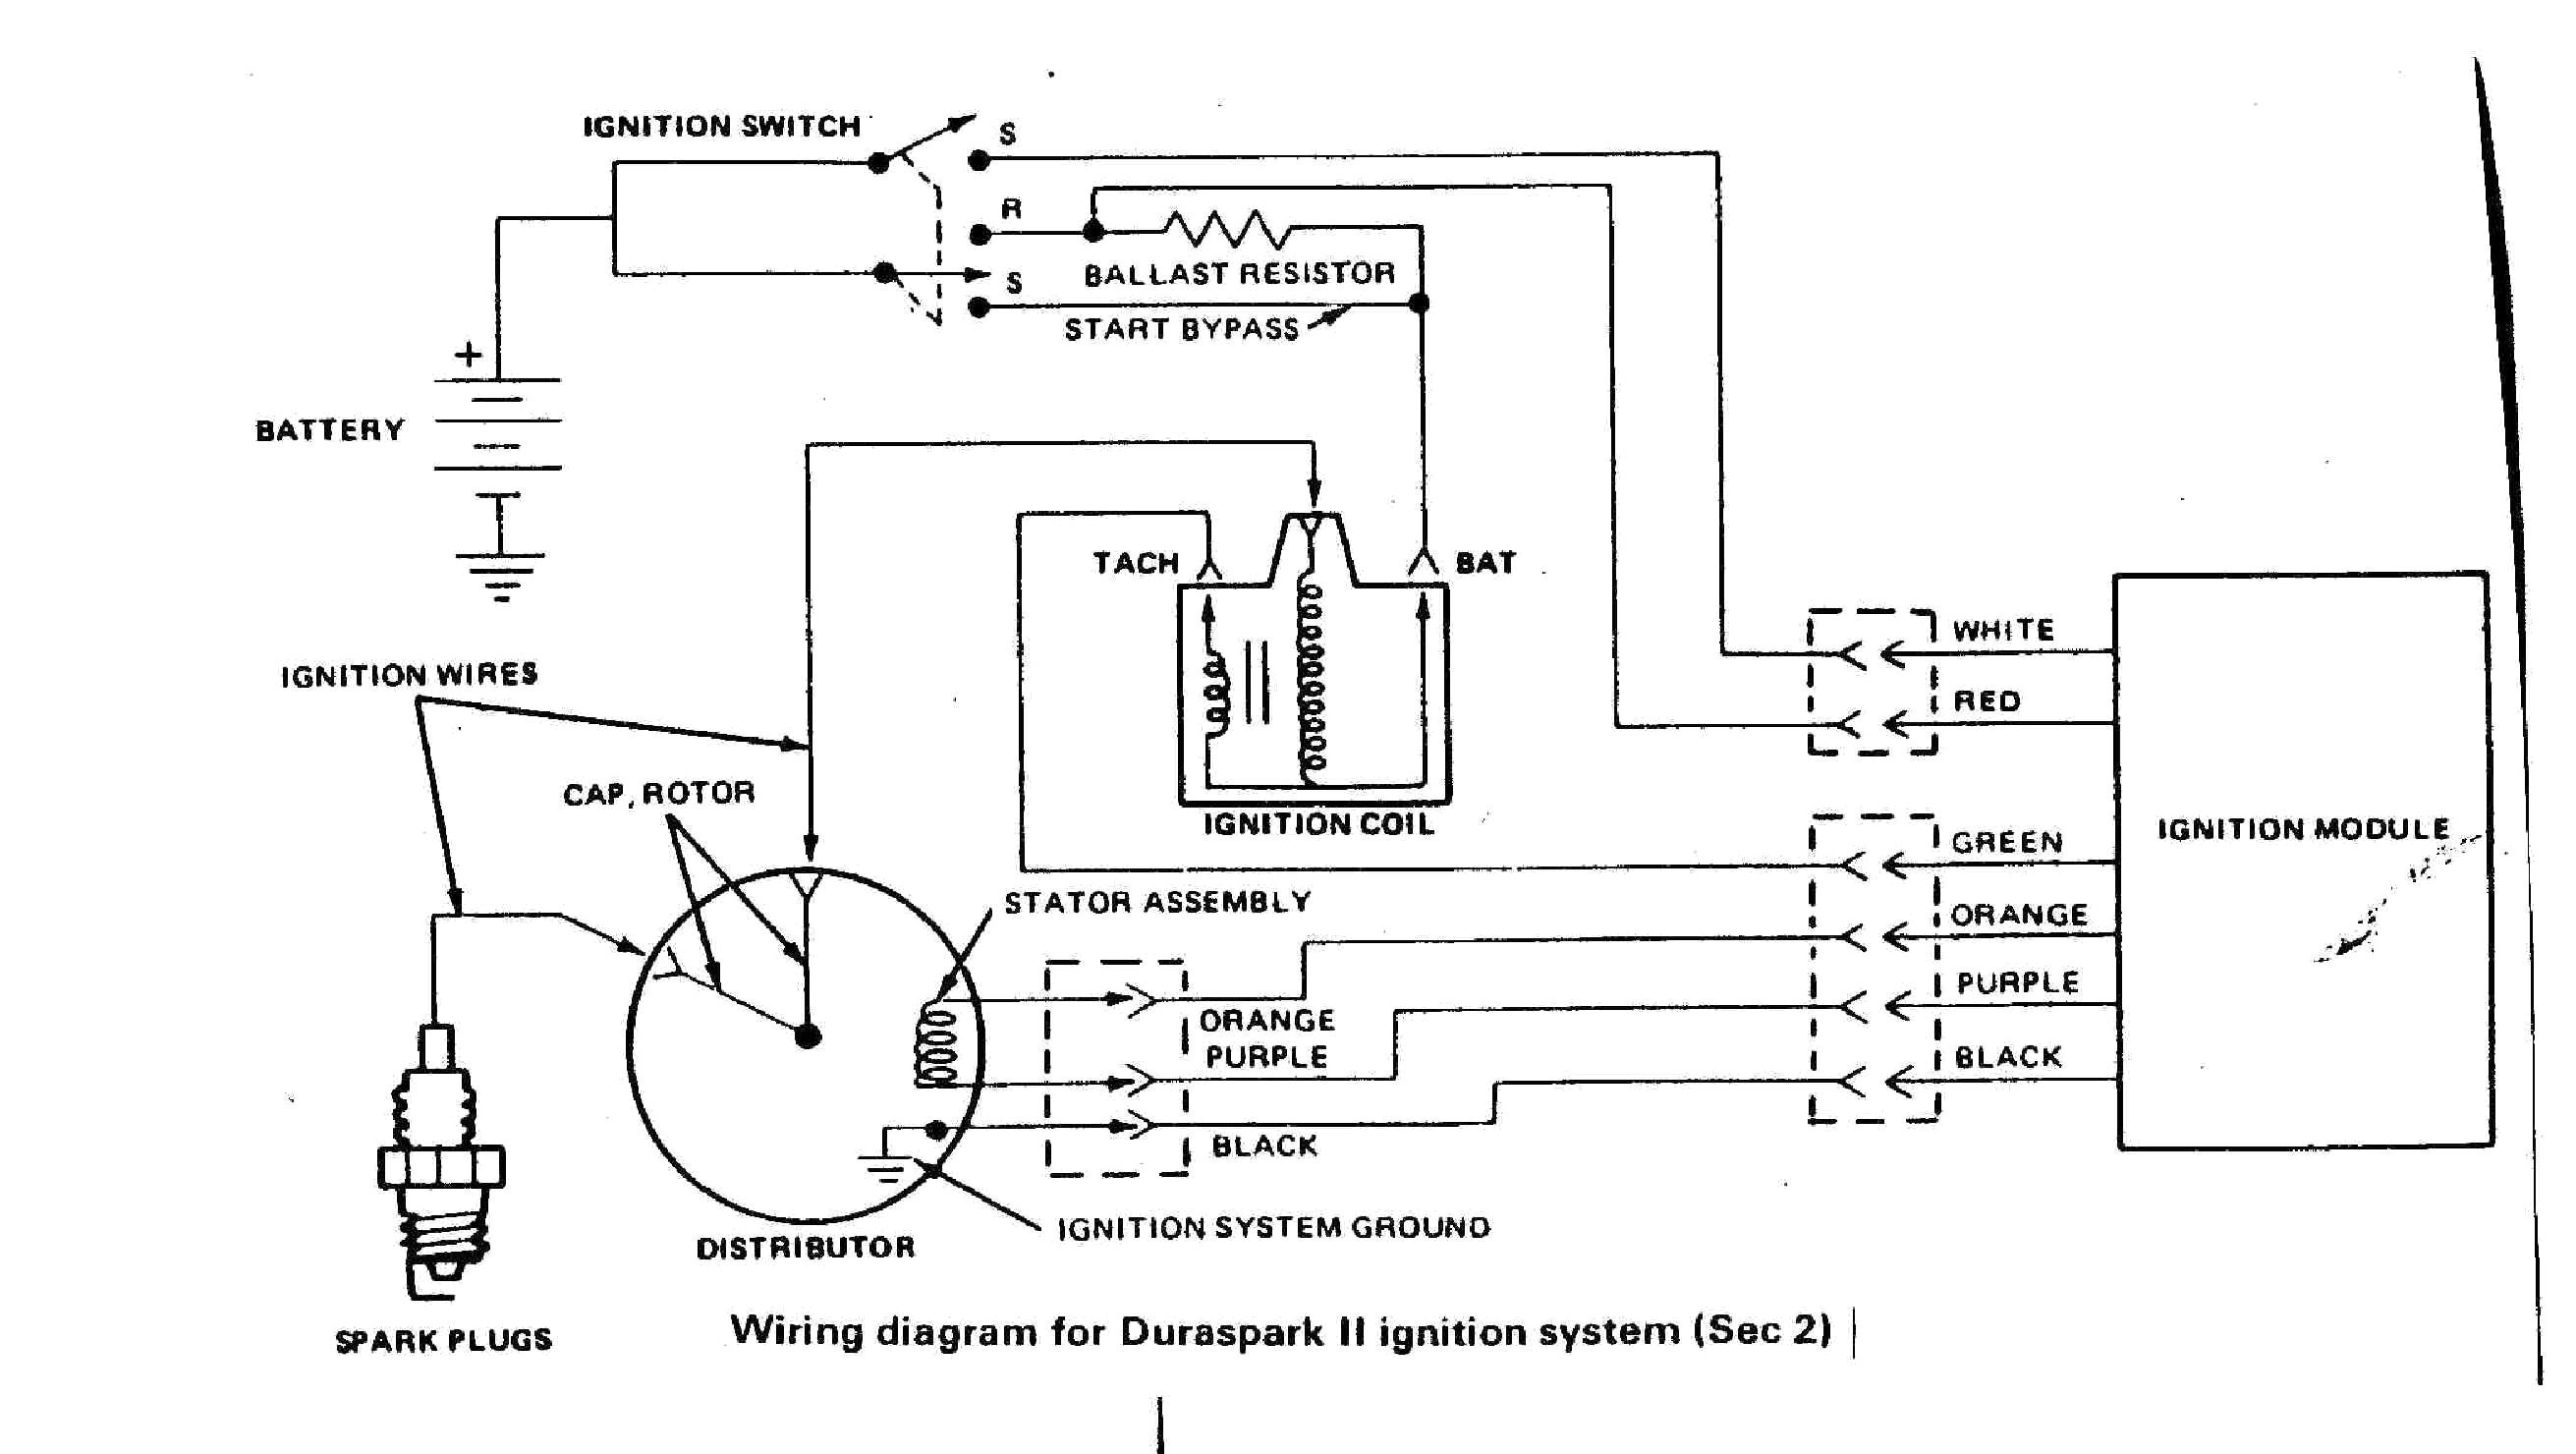 ignition wiring diagram for a tractor example electrical wiring rh huntervalleyhotels co Ford Tractor Generator Wiring Diagram Ford Tractor Alternator Wiring Diagram